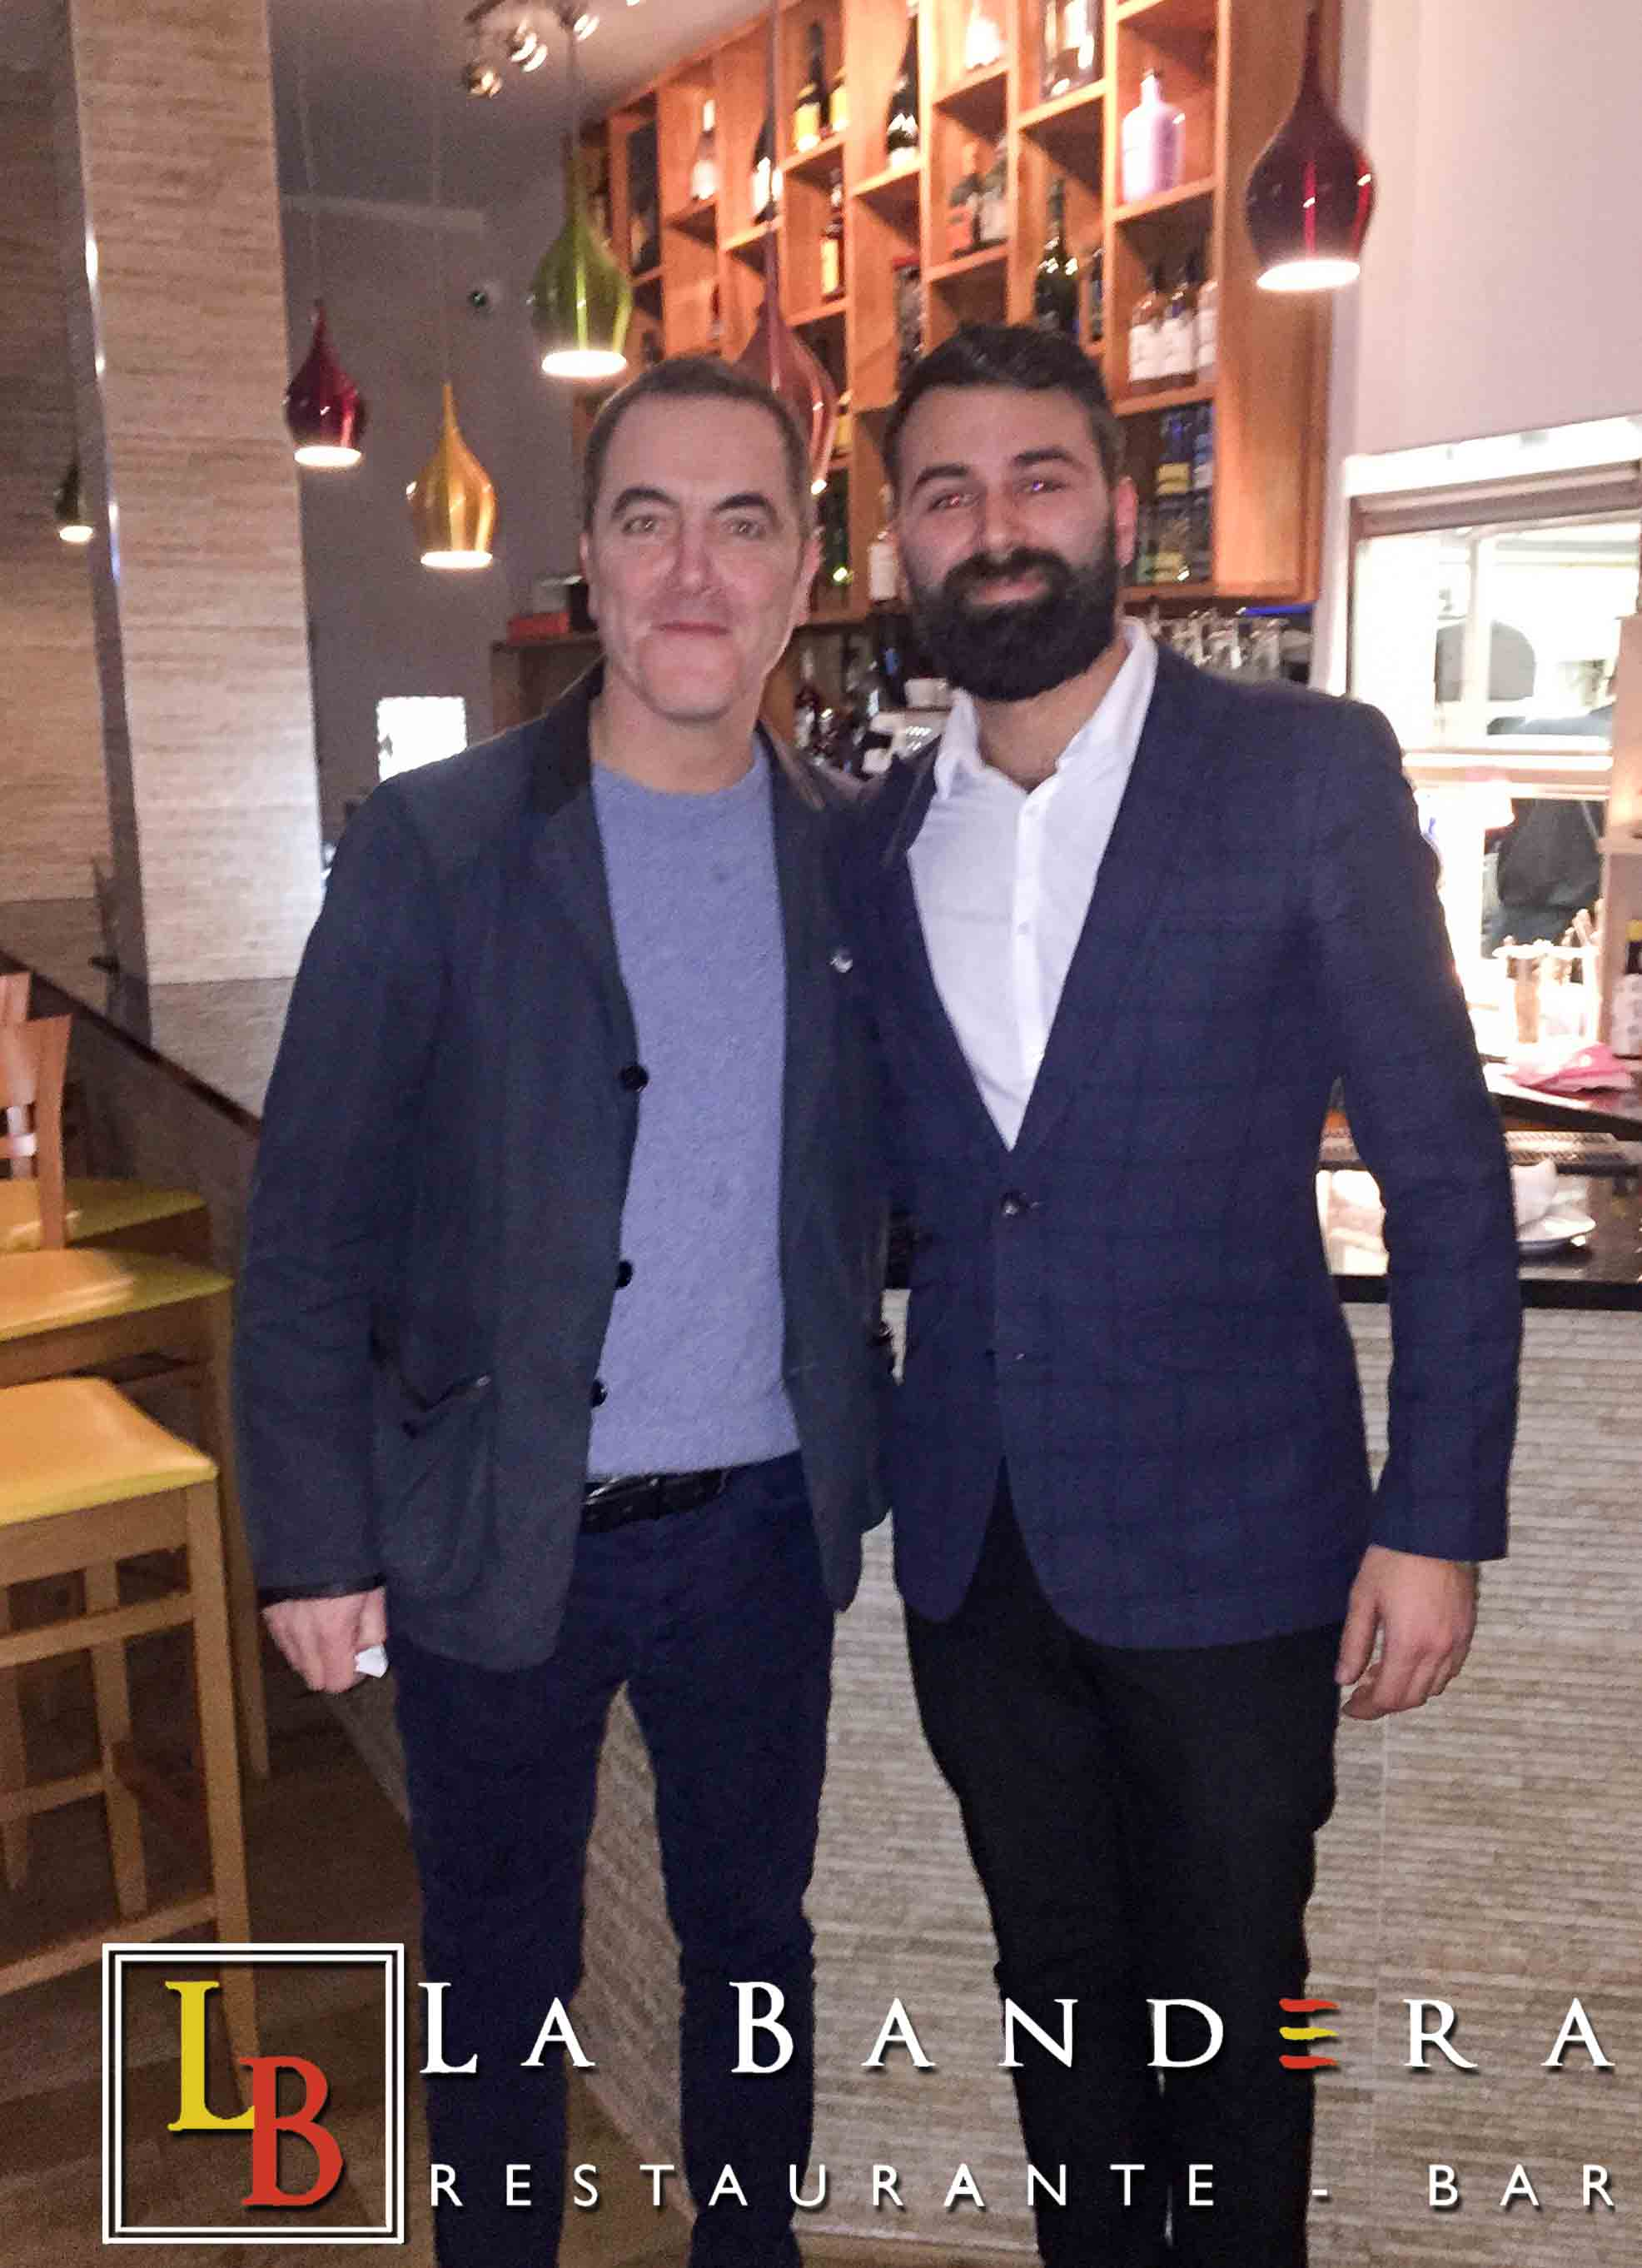 James Nesbitt at La Bandera